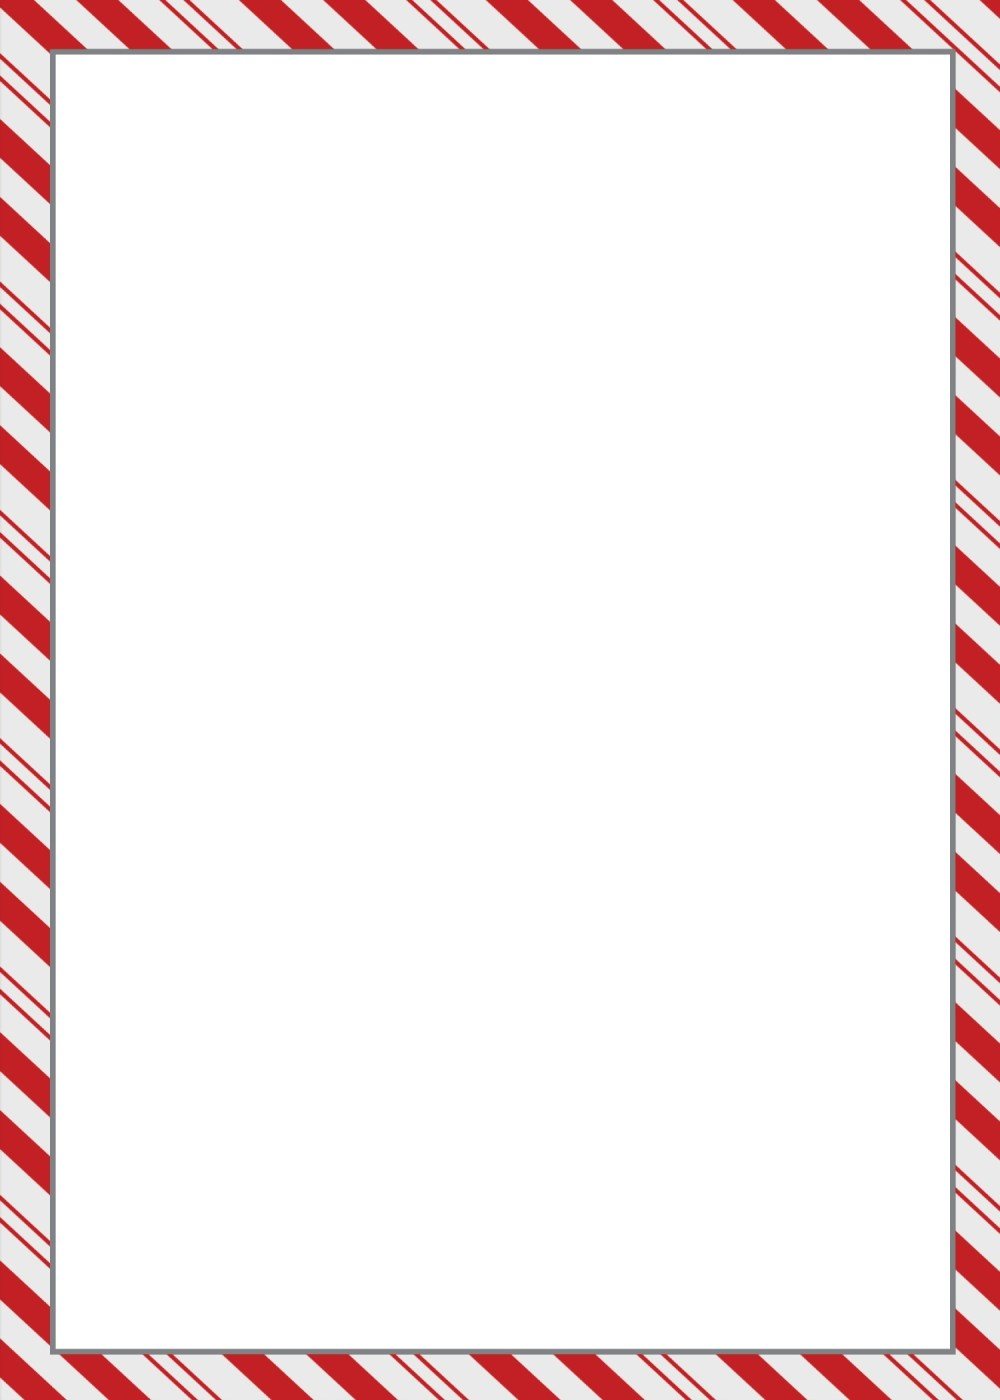 medium resolution of christmas candy cane border clip art fun for christmas throughout candy canes clipart image christmas page border made of candy canes